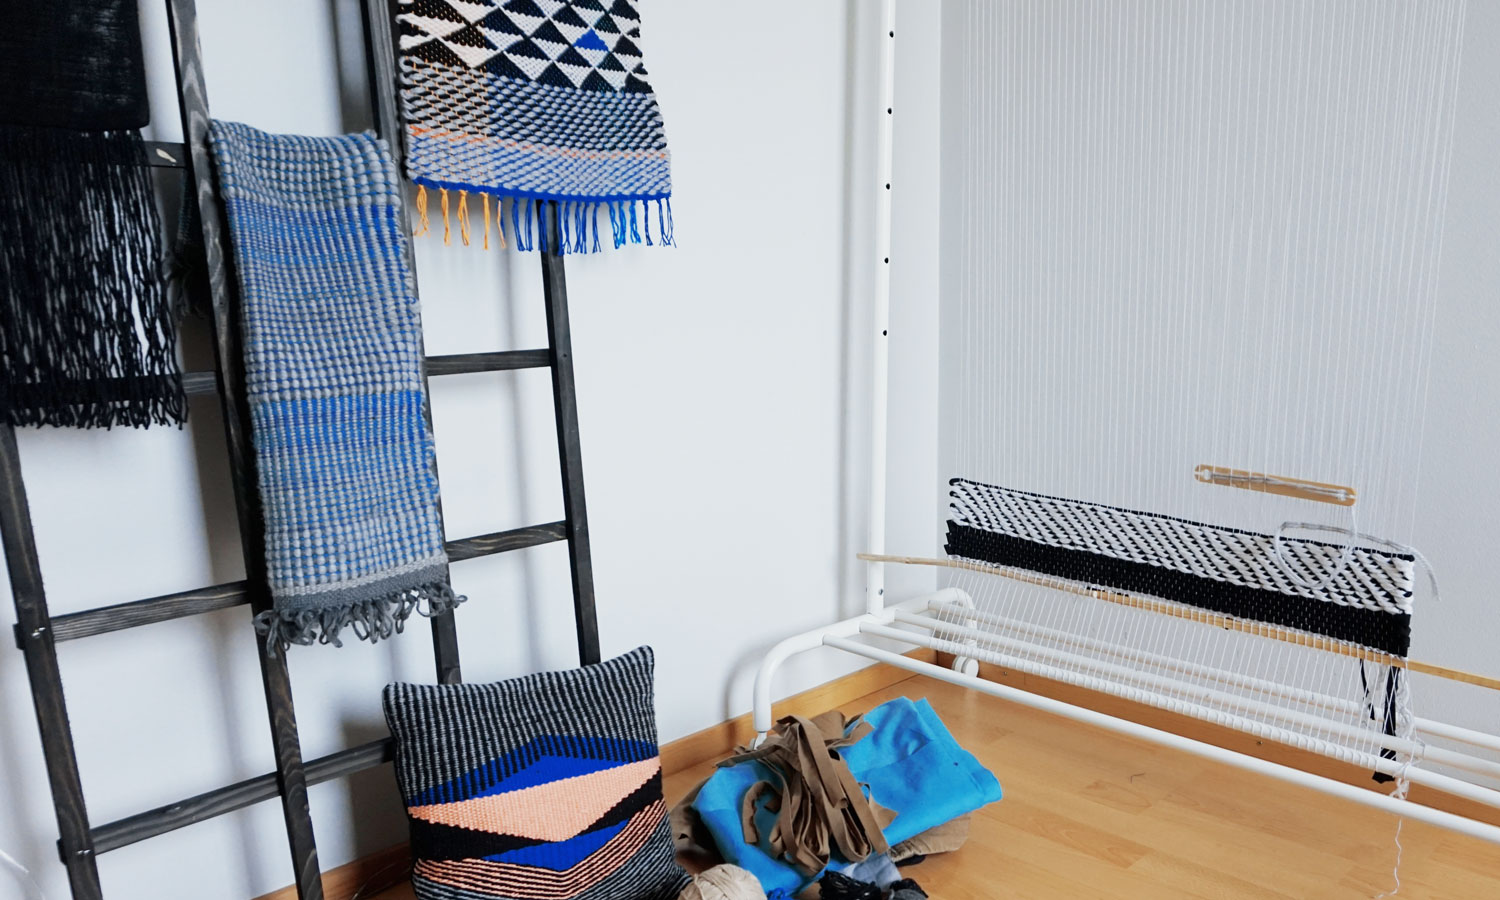 Image of a corner of a room with a large weaving loom and an assortment of textile home goods